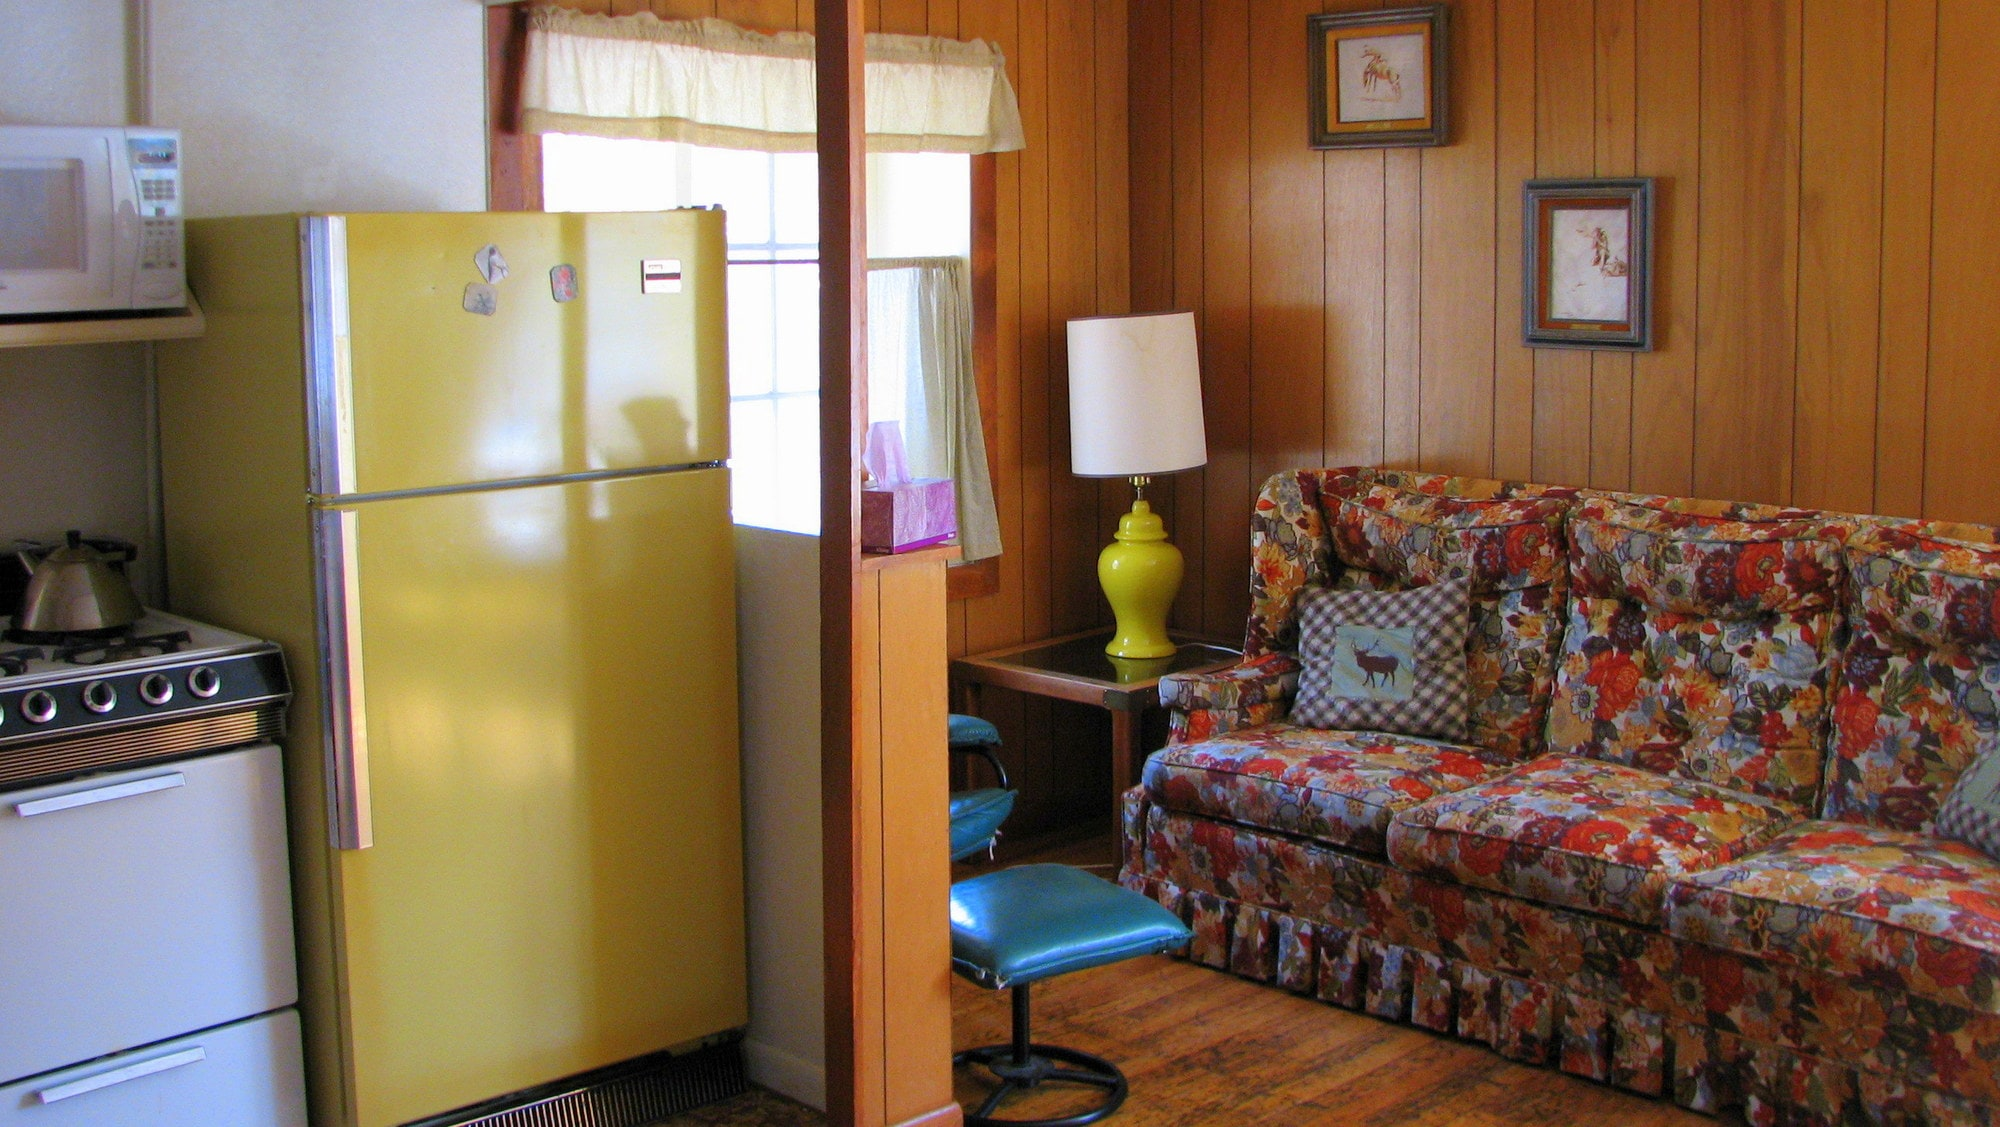 Each cabin is equipped with basic pots and pans and table service.